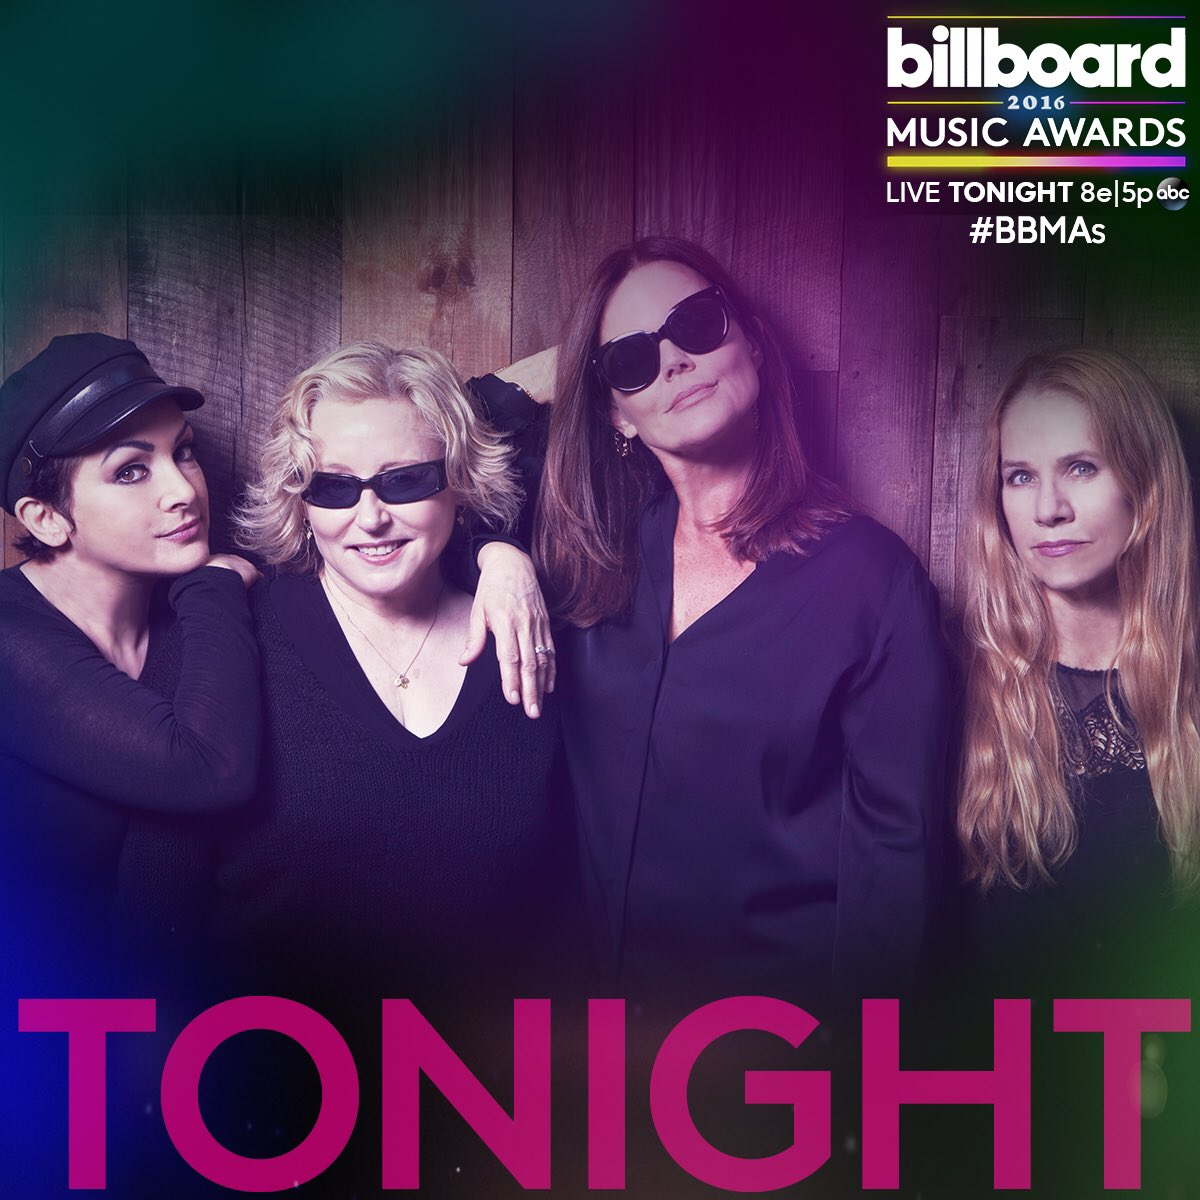 TONIGHT! Get a special preview of our farewell tour when we rock the #BBMAs! Tune in at 8e/5p on ABC! #WeGotTheBeat https://t.co/oROD88aYhZ